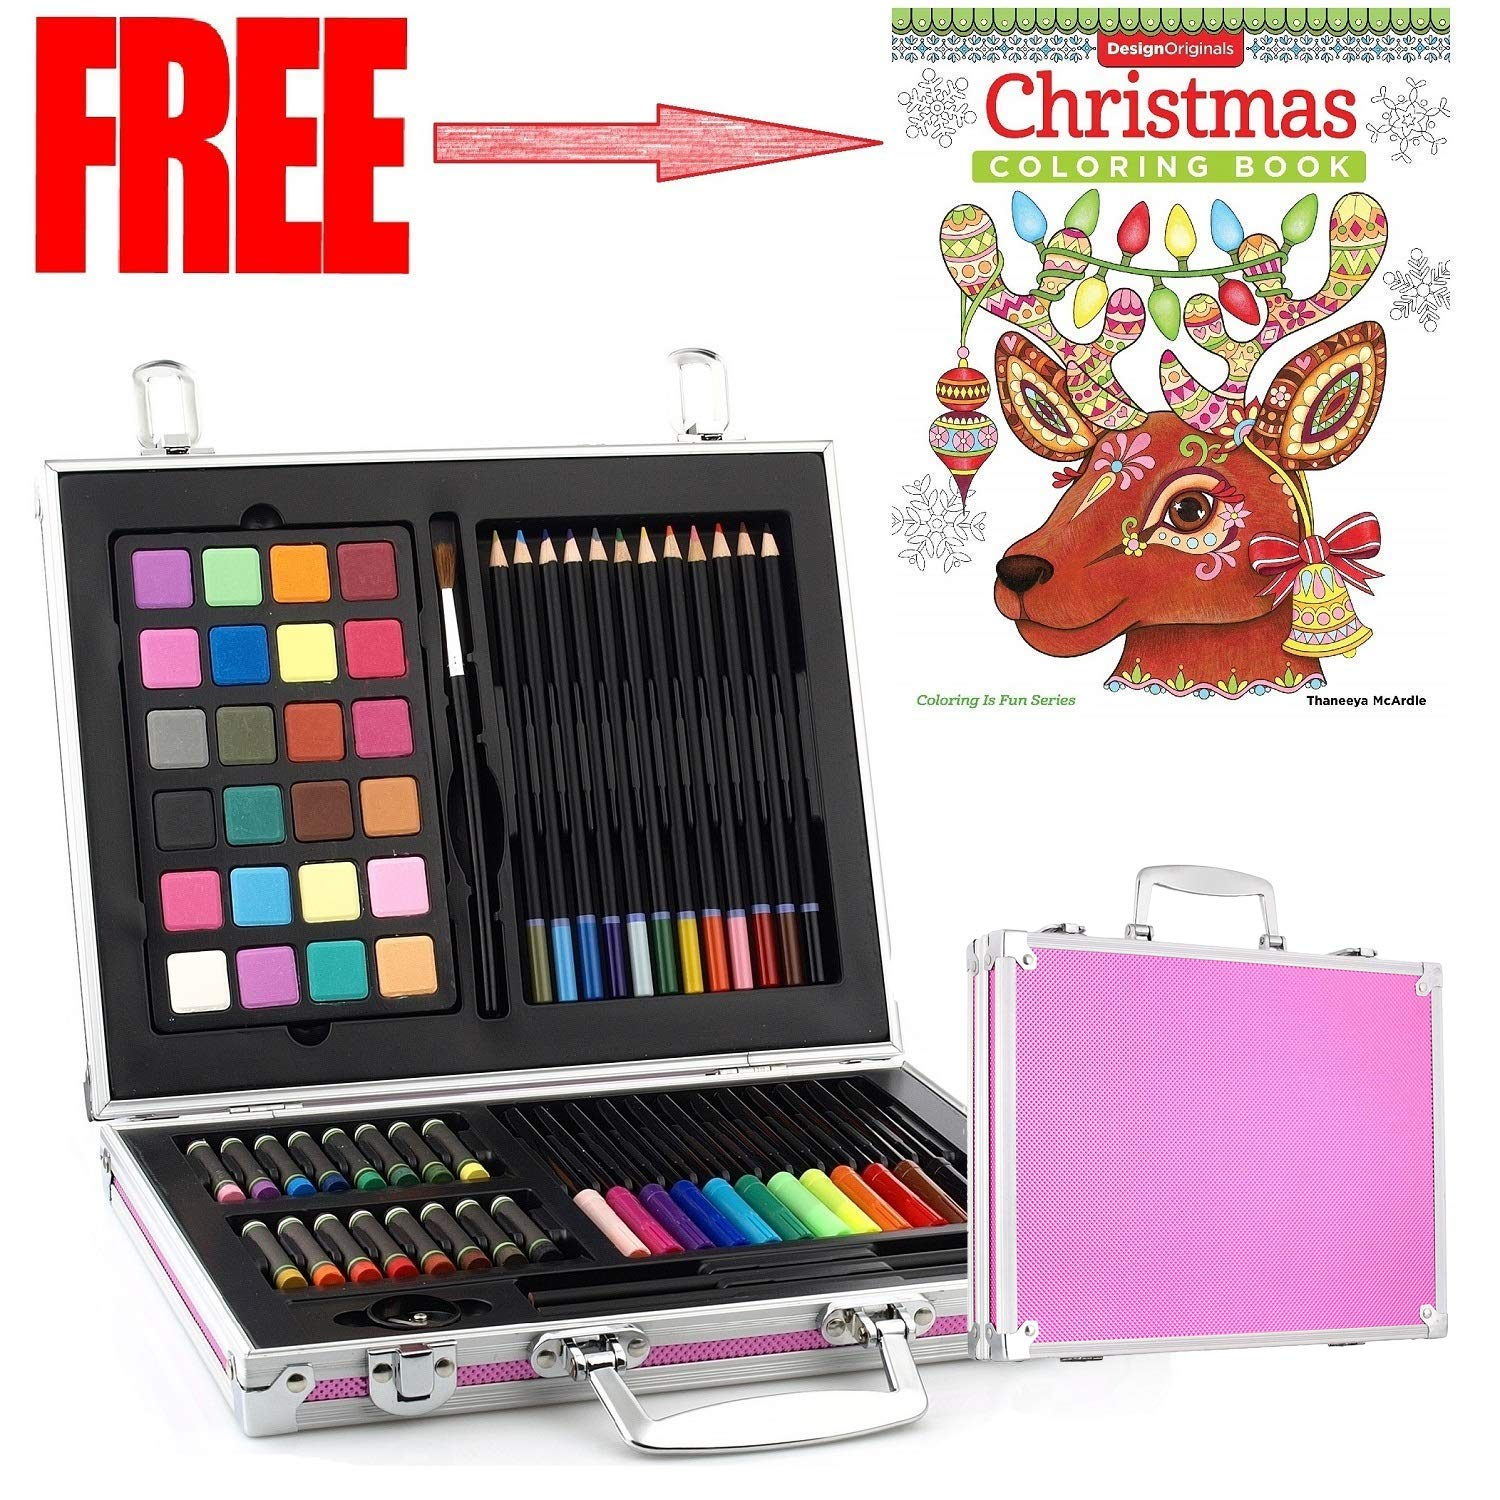 Gallery Studio- 69 Piece Deluxe Art Supplies Set in Pink Aluminum Case - (Quality Mediums Guaranteed) by Worldwide Specials LLC